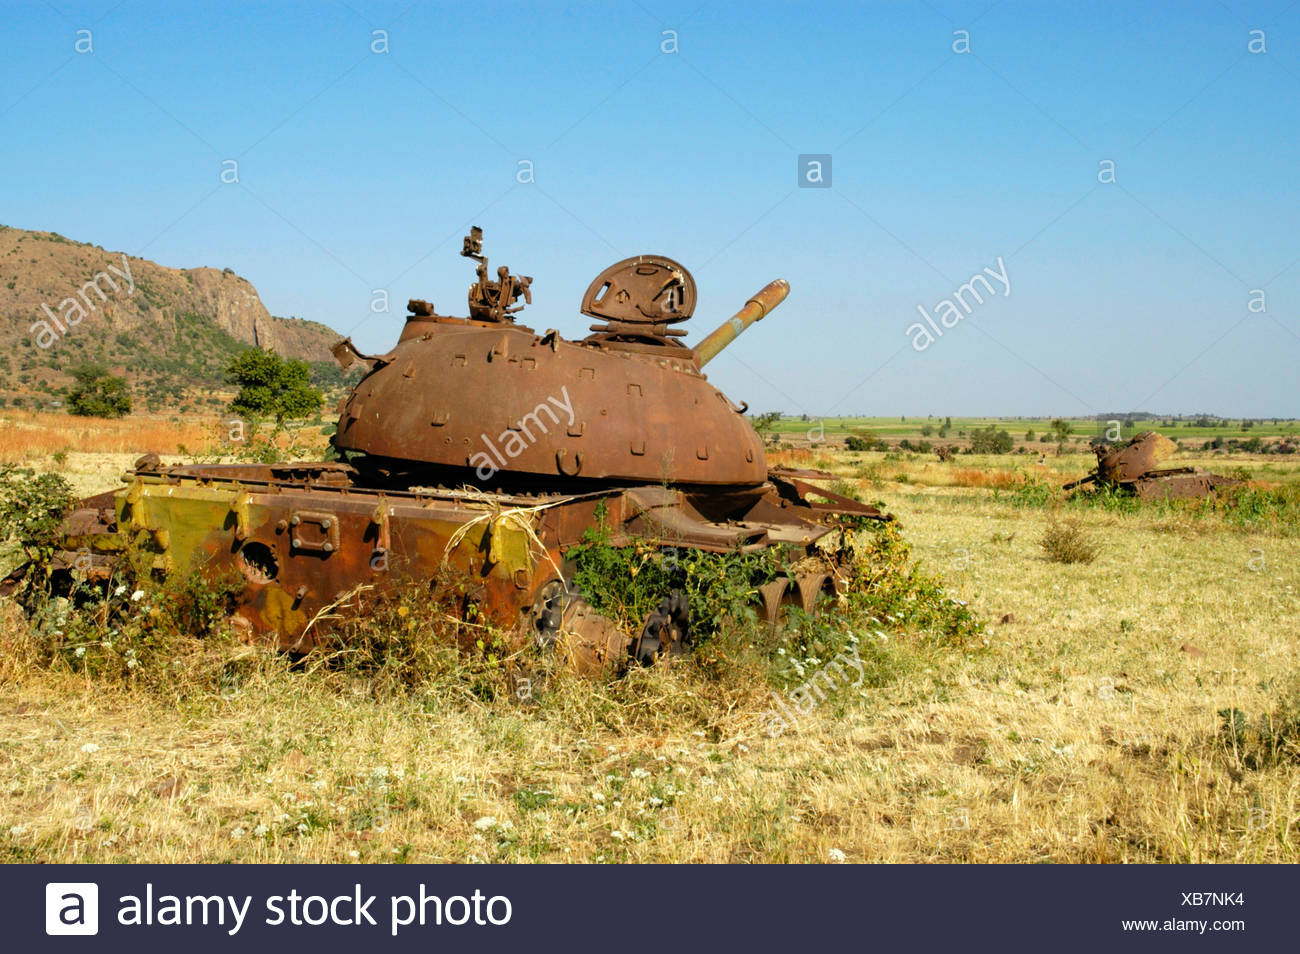 War, rusted old Russian tank lying in a field near Aksum, Ethiopia, Africa Stock Photo